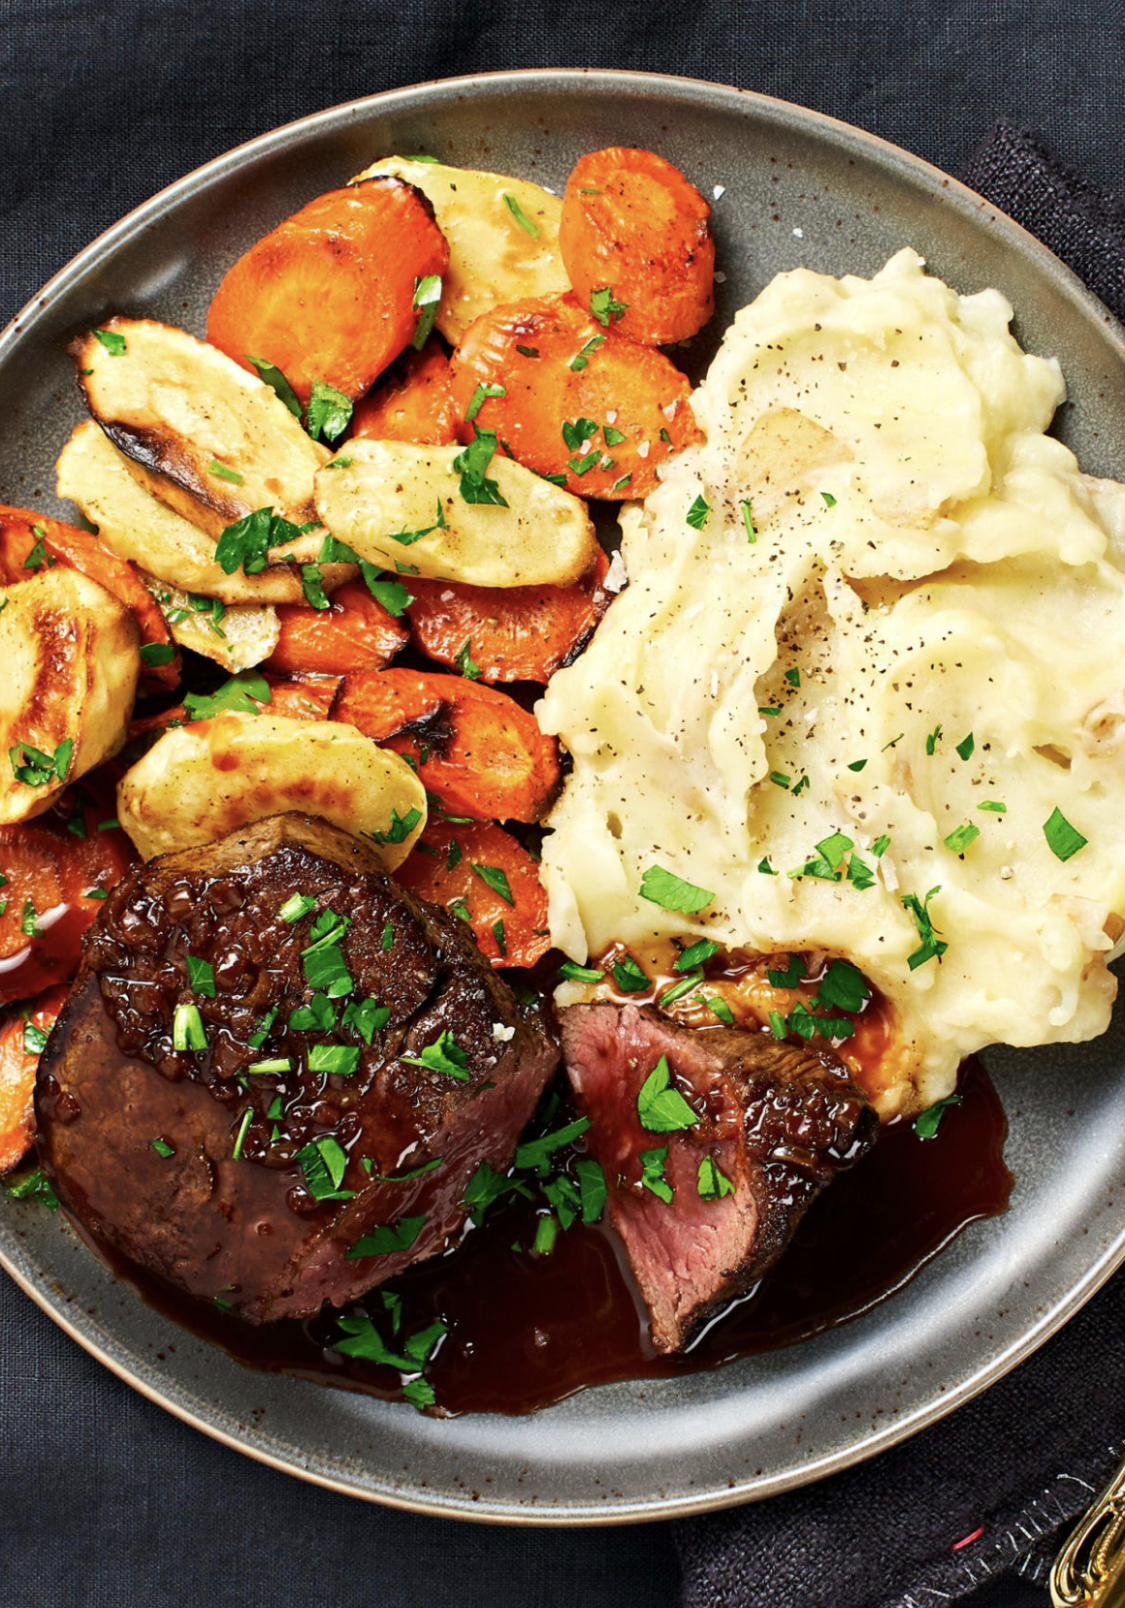 Beef Tenderloin with Brown Butter Roasted Veggies and Cheesy Mashed Potatoes - dinner recipes steak